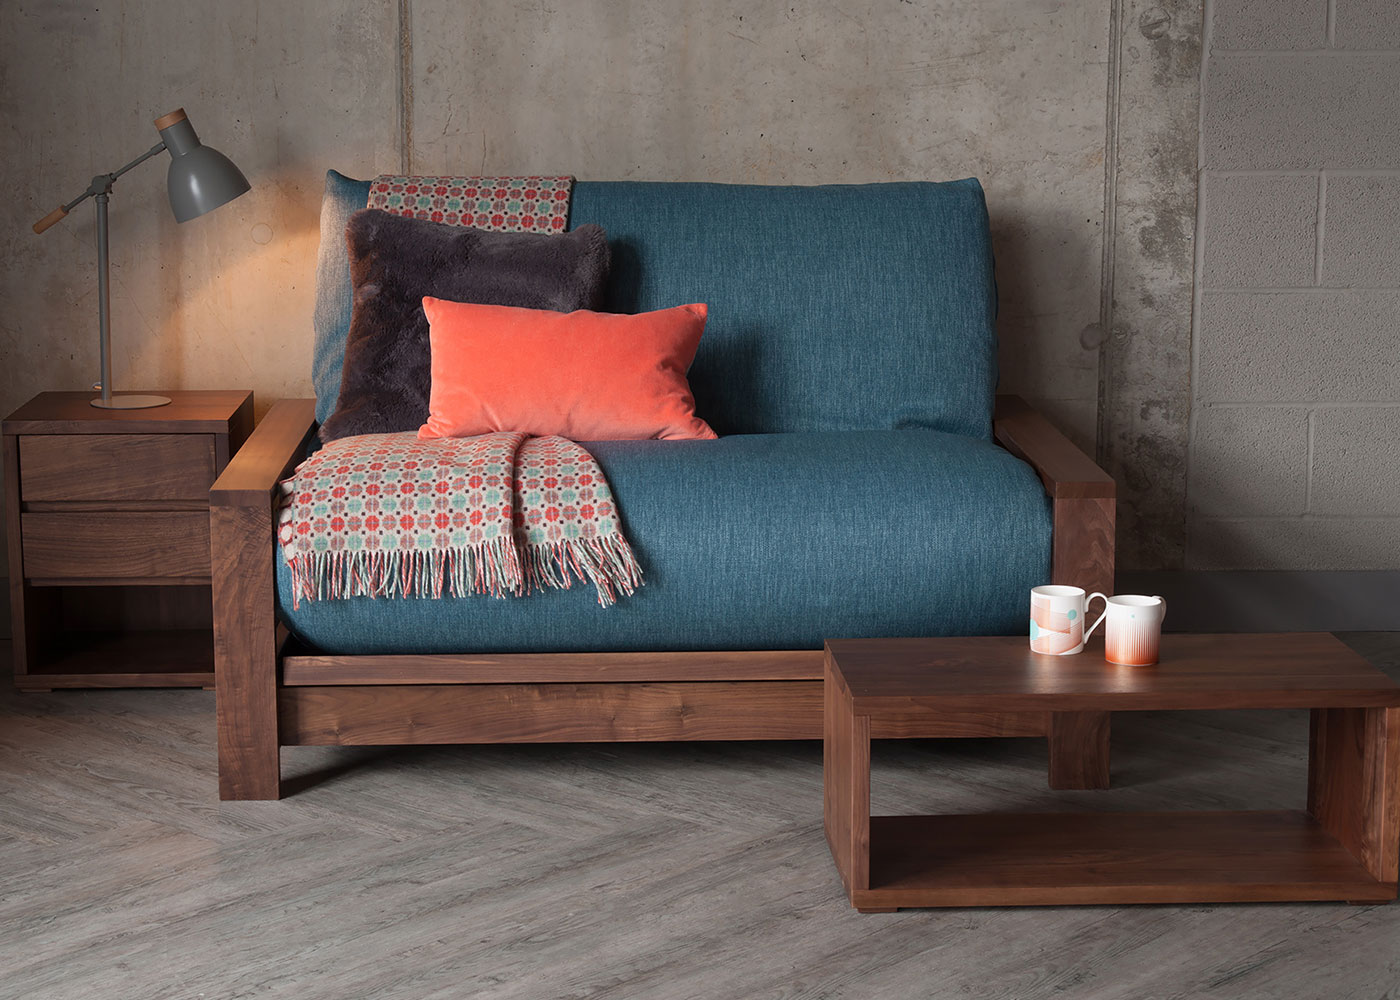 Black Lotus Panama futon sofa bed made from solid walnut